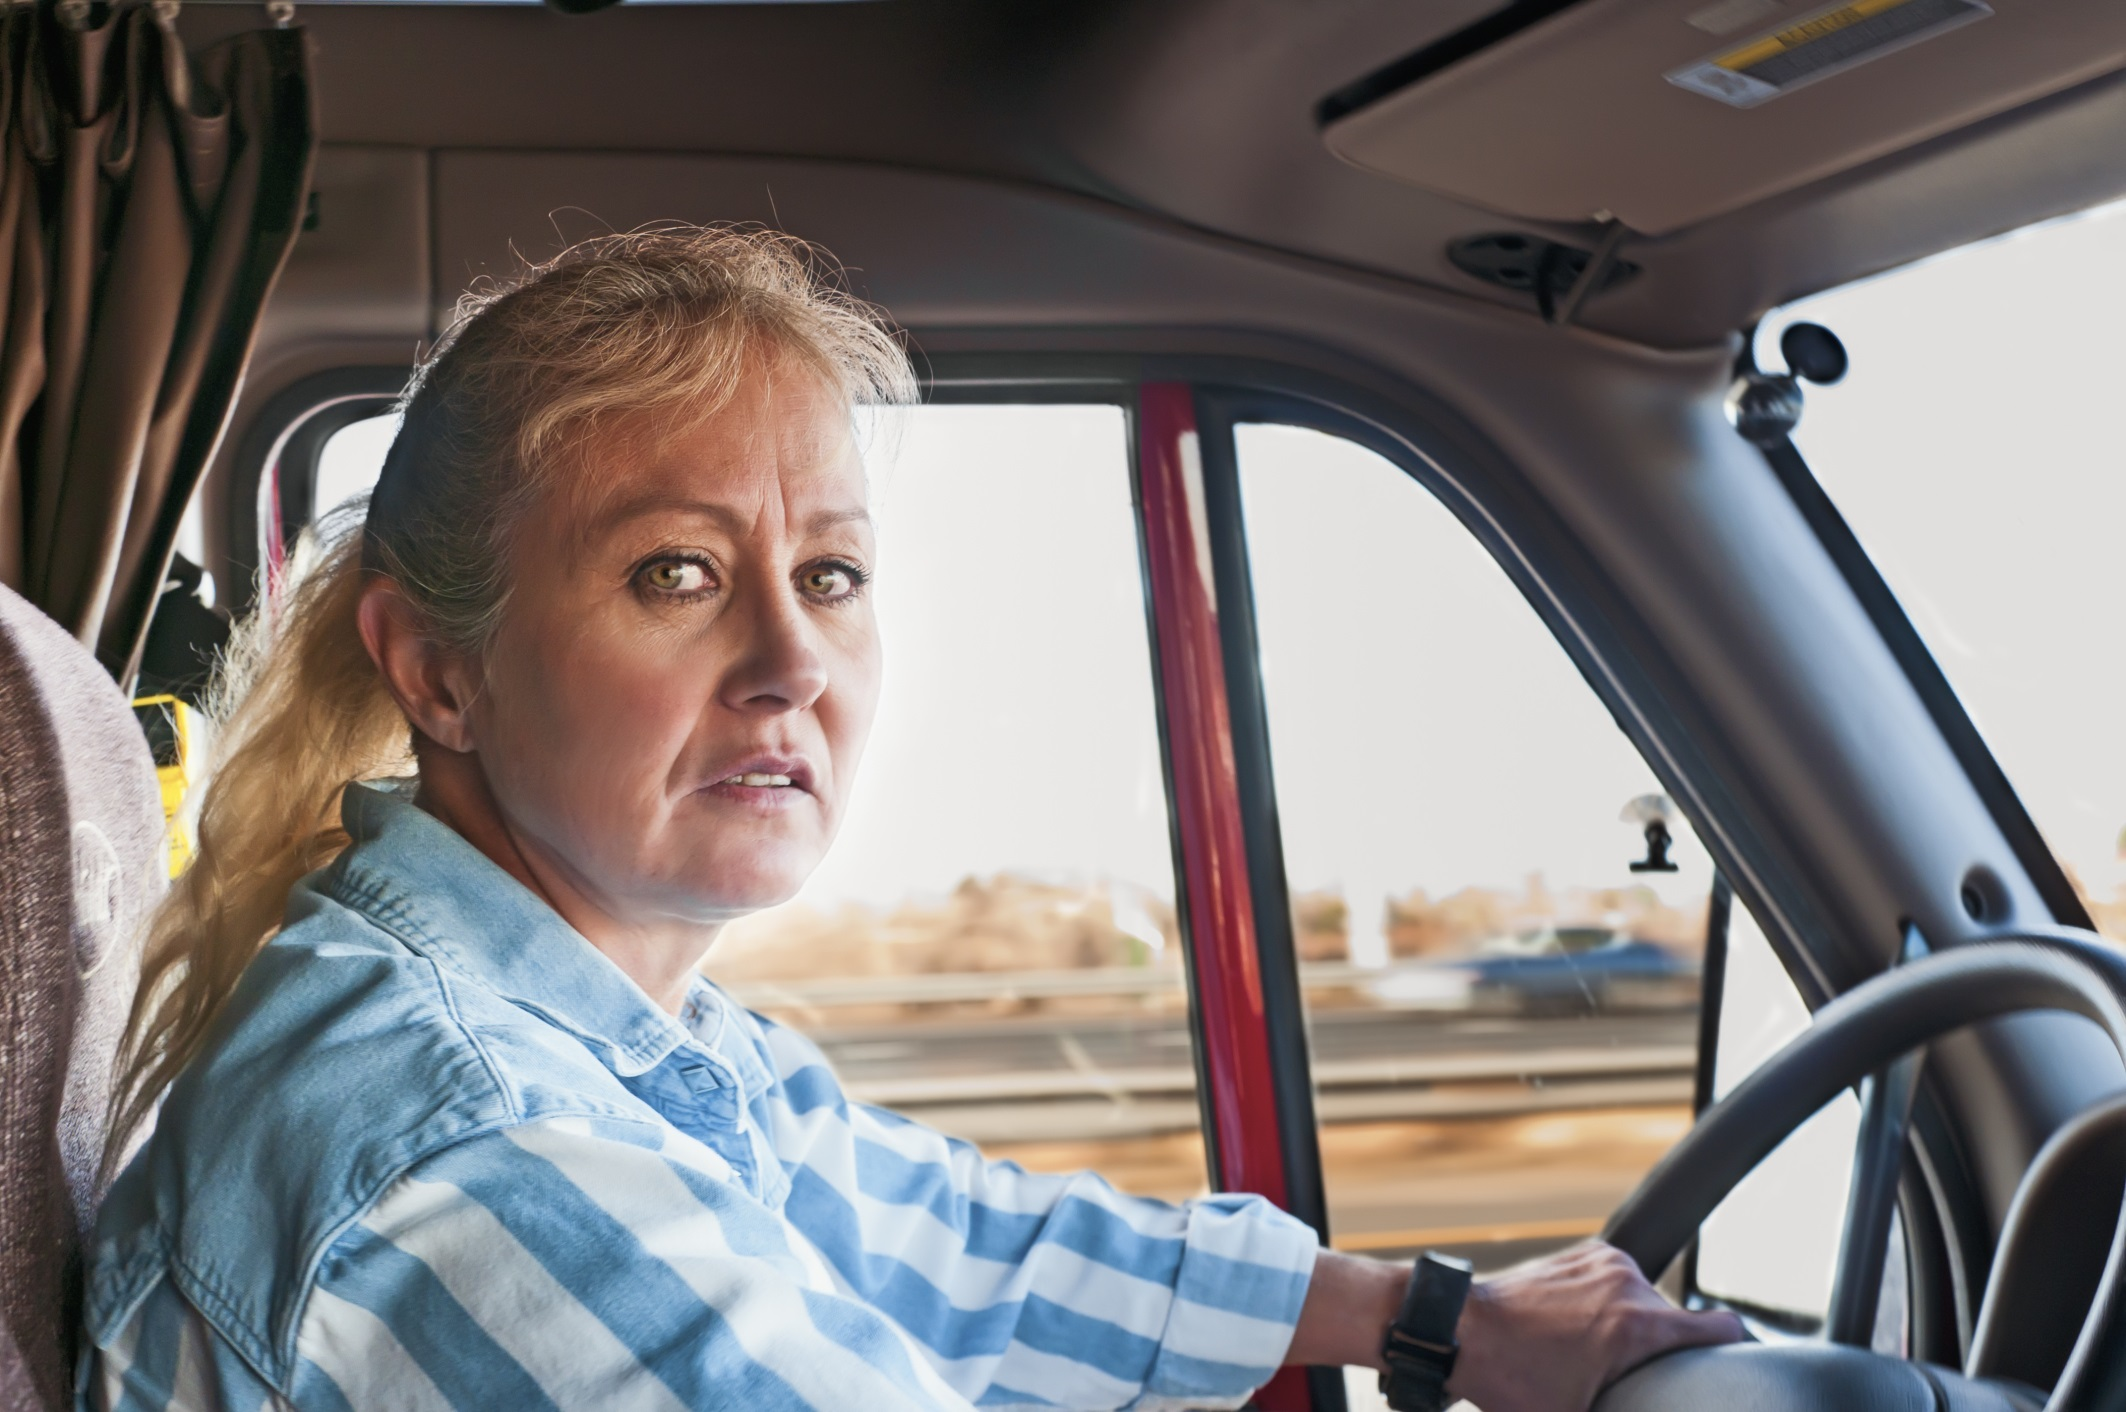 Women At The Wheel A History Of Determination Tenacity In The Trucking Industry additionally Dianna Agron Nip Slip Wardrobe Malfunction Alexander Mcqueen Gala Pic in addition Moving Truck Pictures together with Liftgate Service Need moreover Semi Truck Trailers. on penske truck